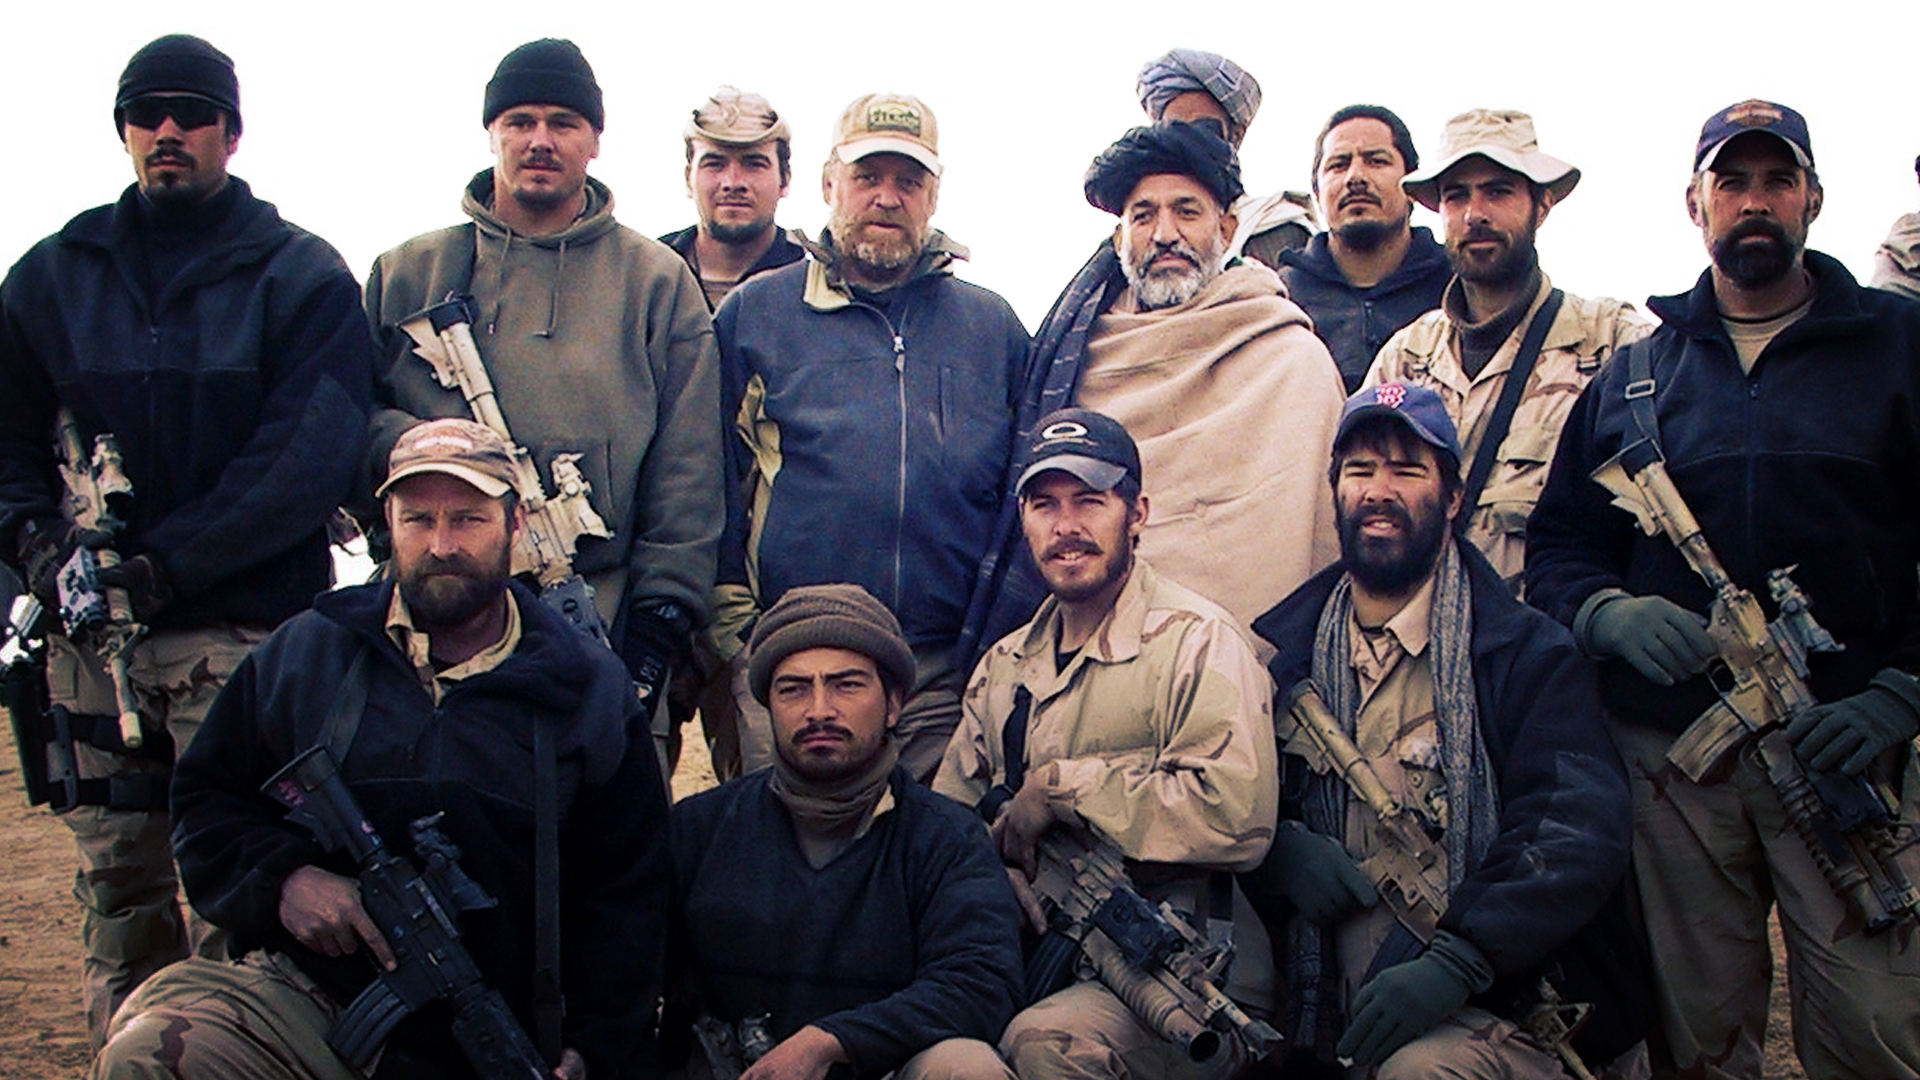 The Special Forces Of ODA 574 The Courageous NRATV